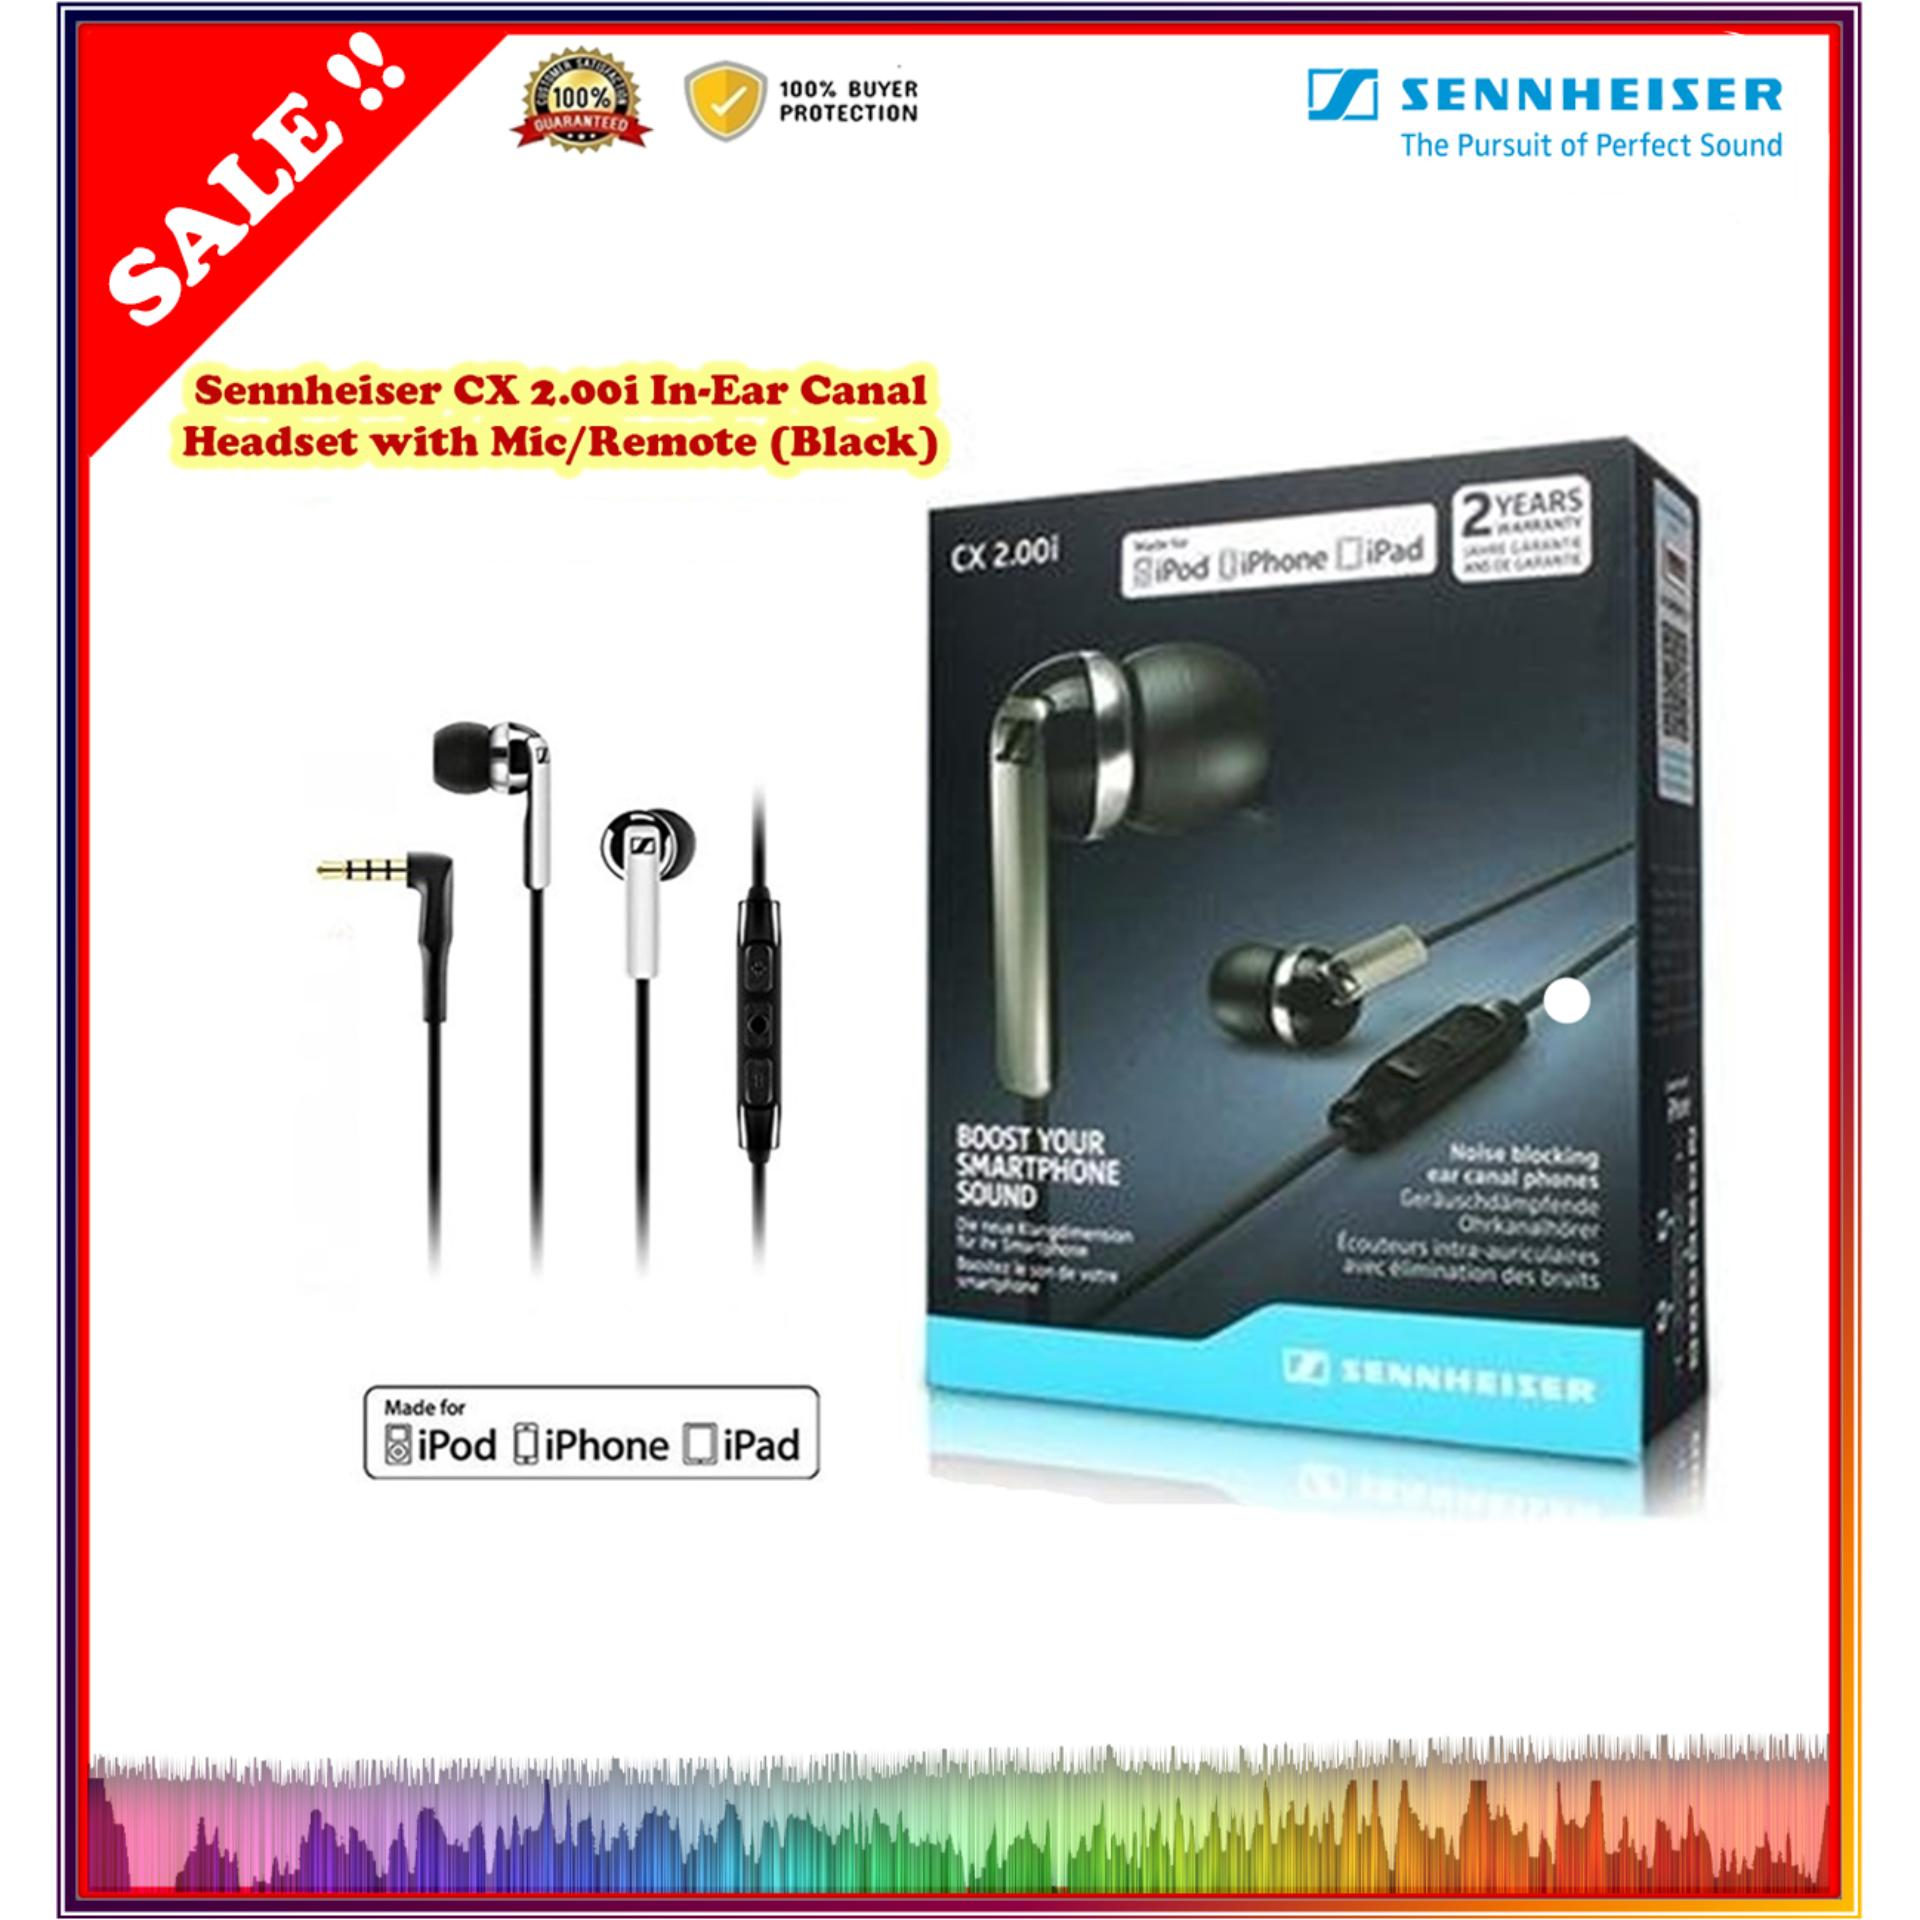 5b48d43e69e In-ear Headphone for sale - In-ear Headphones prices, brands & specs in  Philippines   Lazada.com.ph